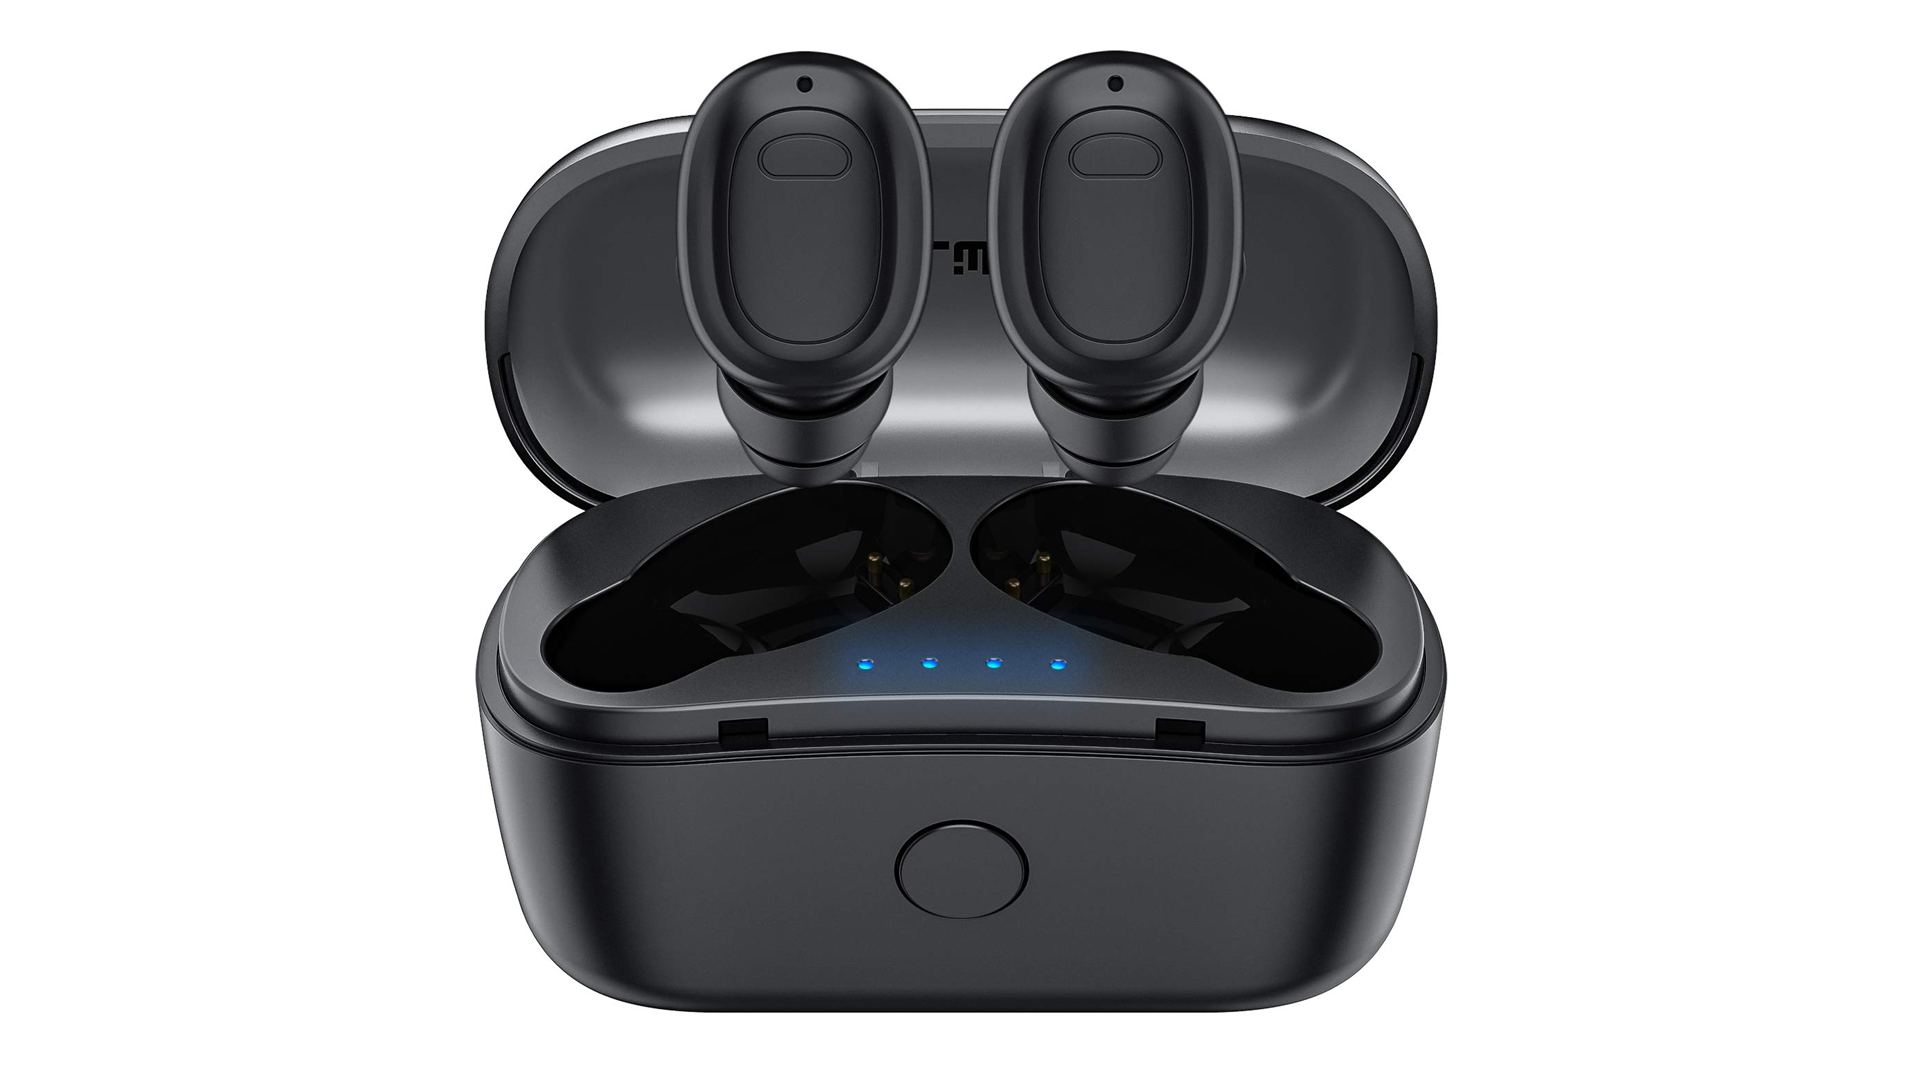 The FALWEDI wireless earbuds above their charging case.